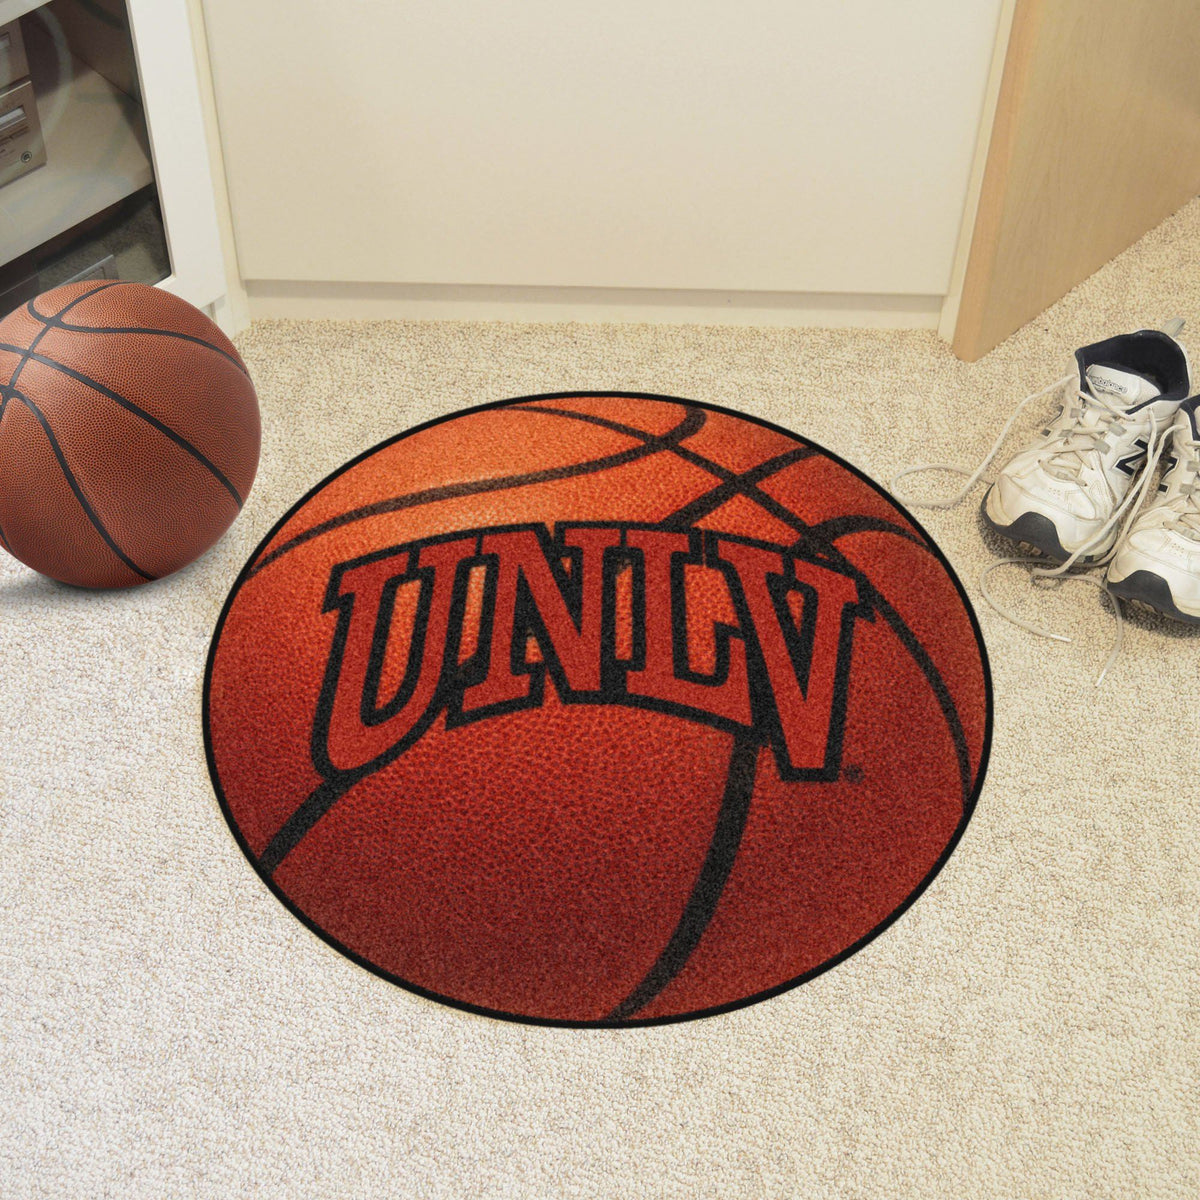 Collegiate - Basketball Mat: T - Z Collegiate Mats, Rectangular Mats, Basketball Mat, Collegiate, Home Fan Mats UNLV